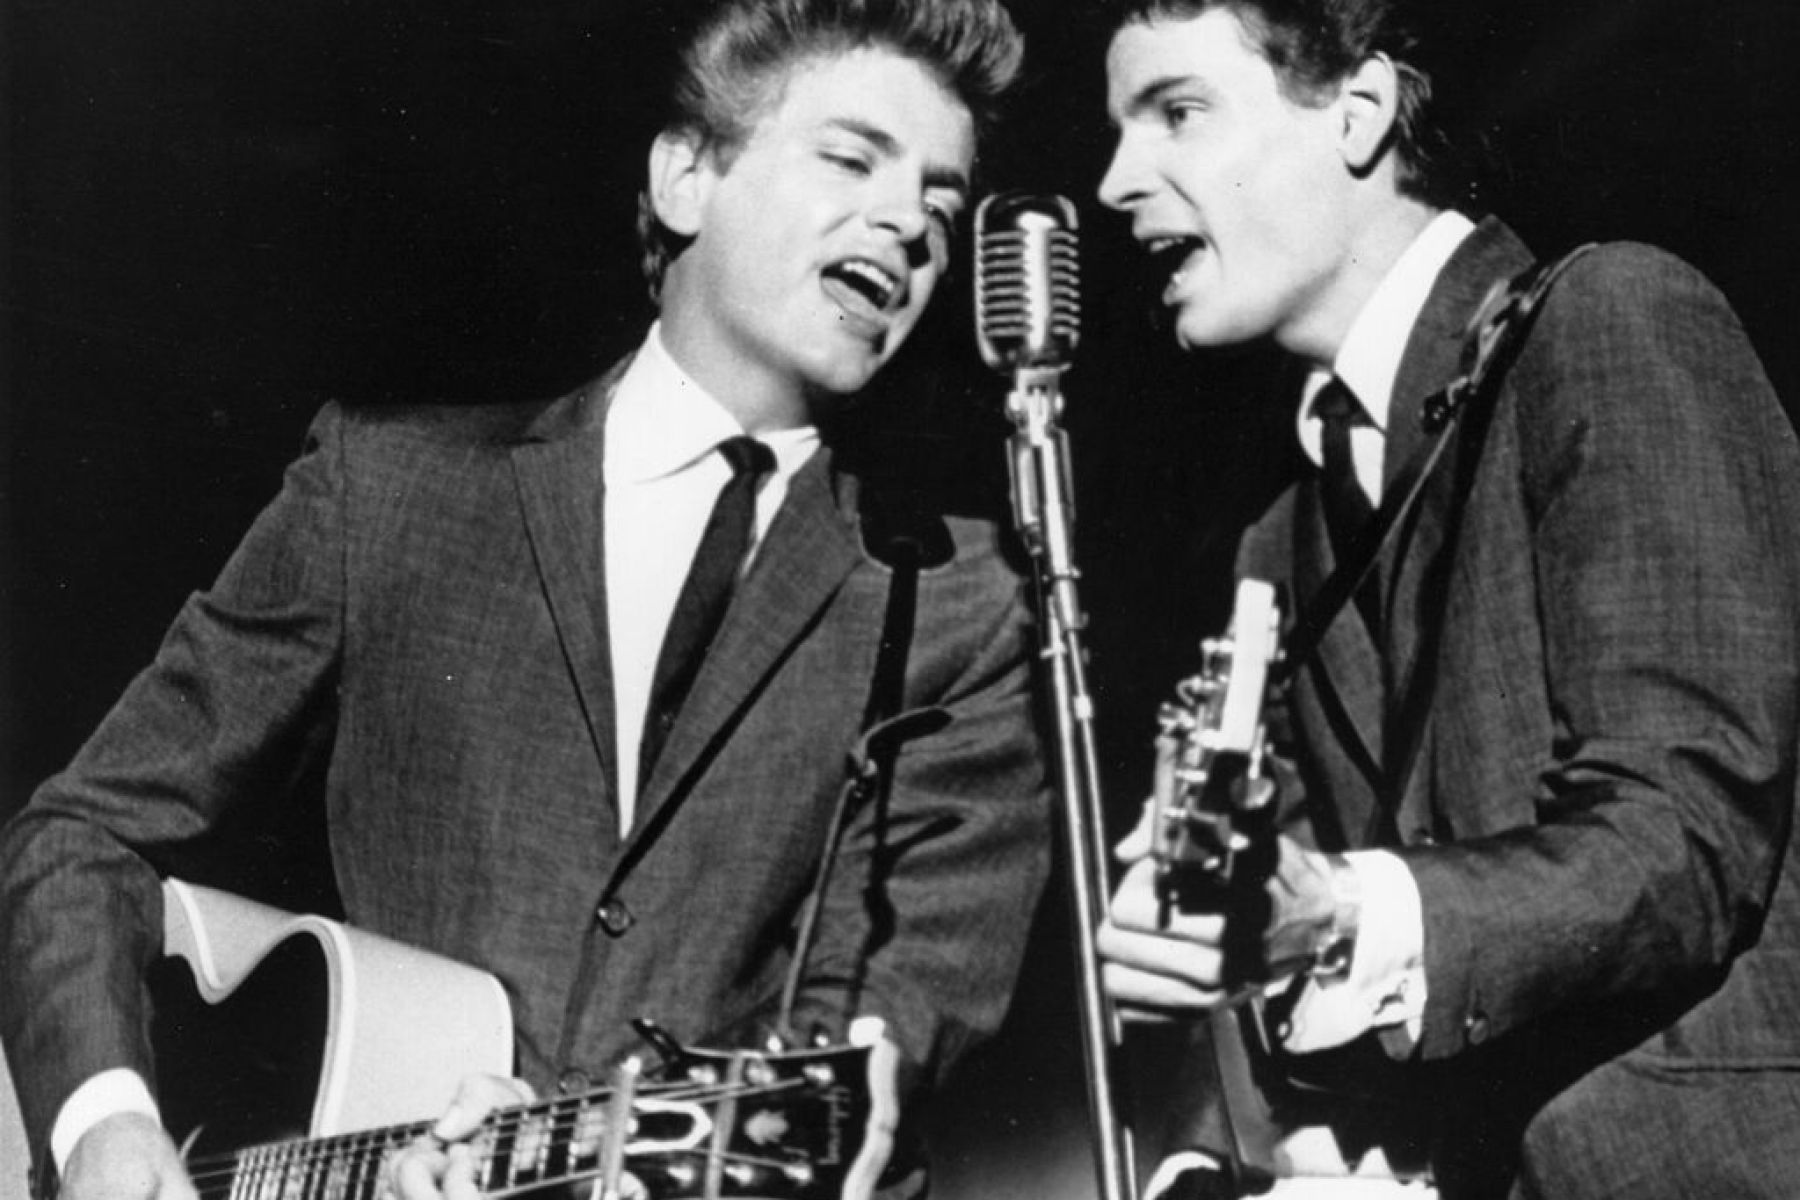 Popular musical duo Phil and Don Everly recording at the Warner Brothers studio in Hollywood, 1963.   (Photo by Keystone/Getty Images)